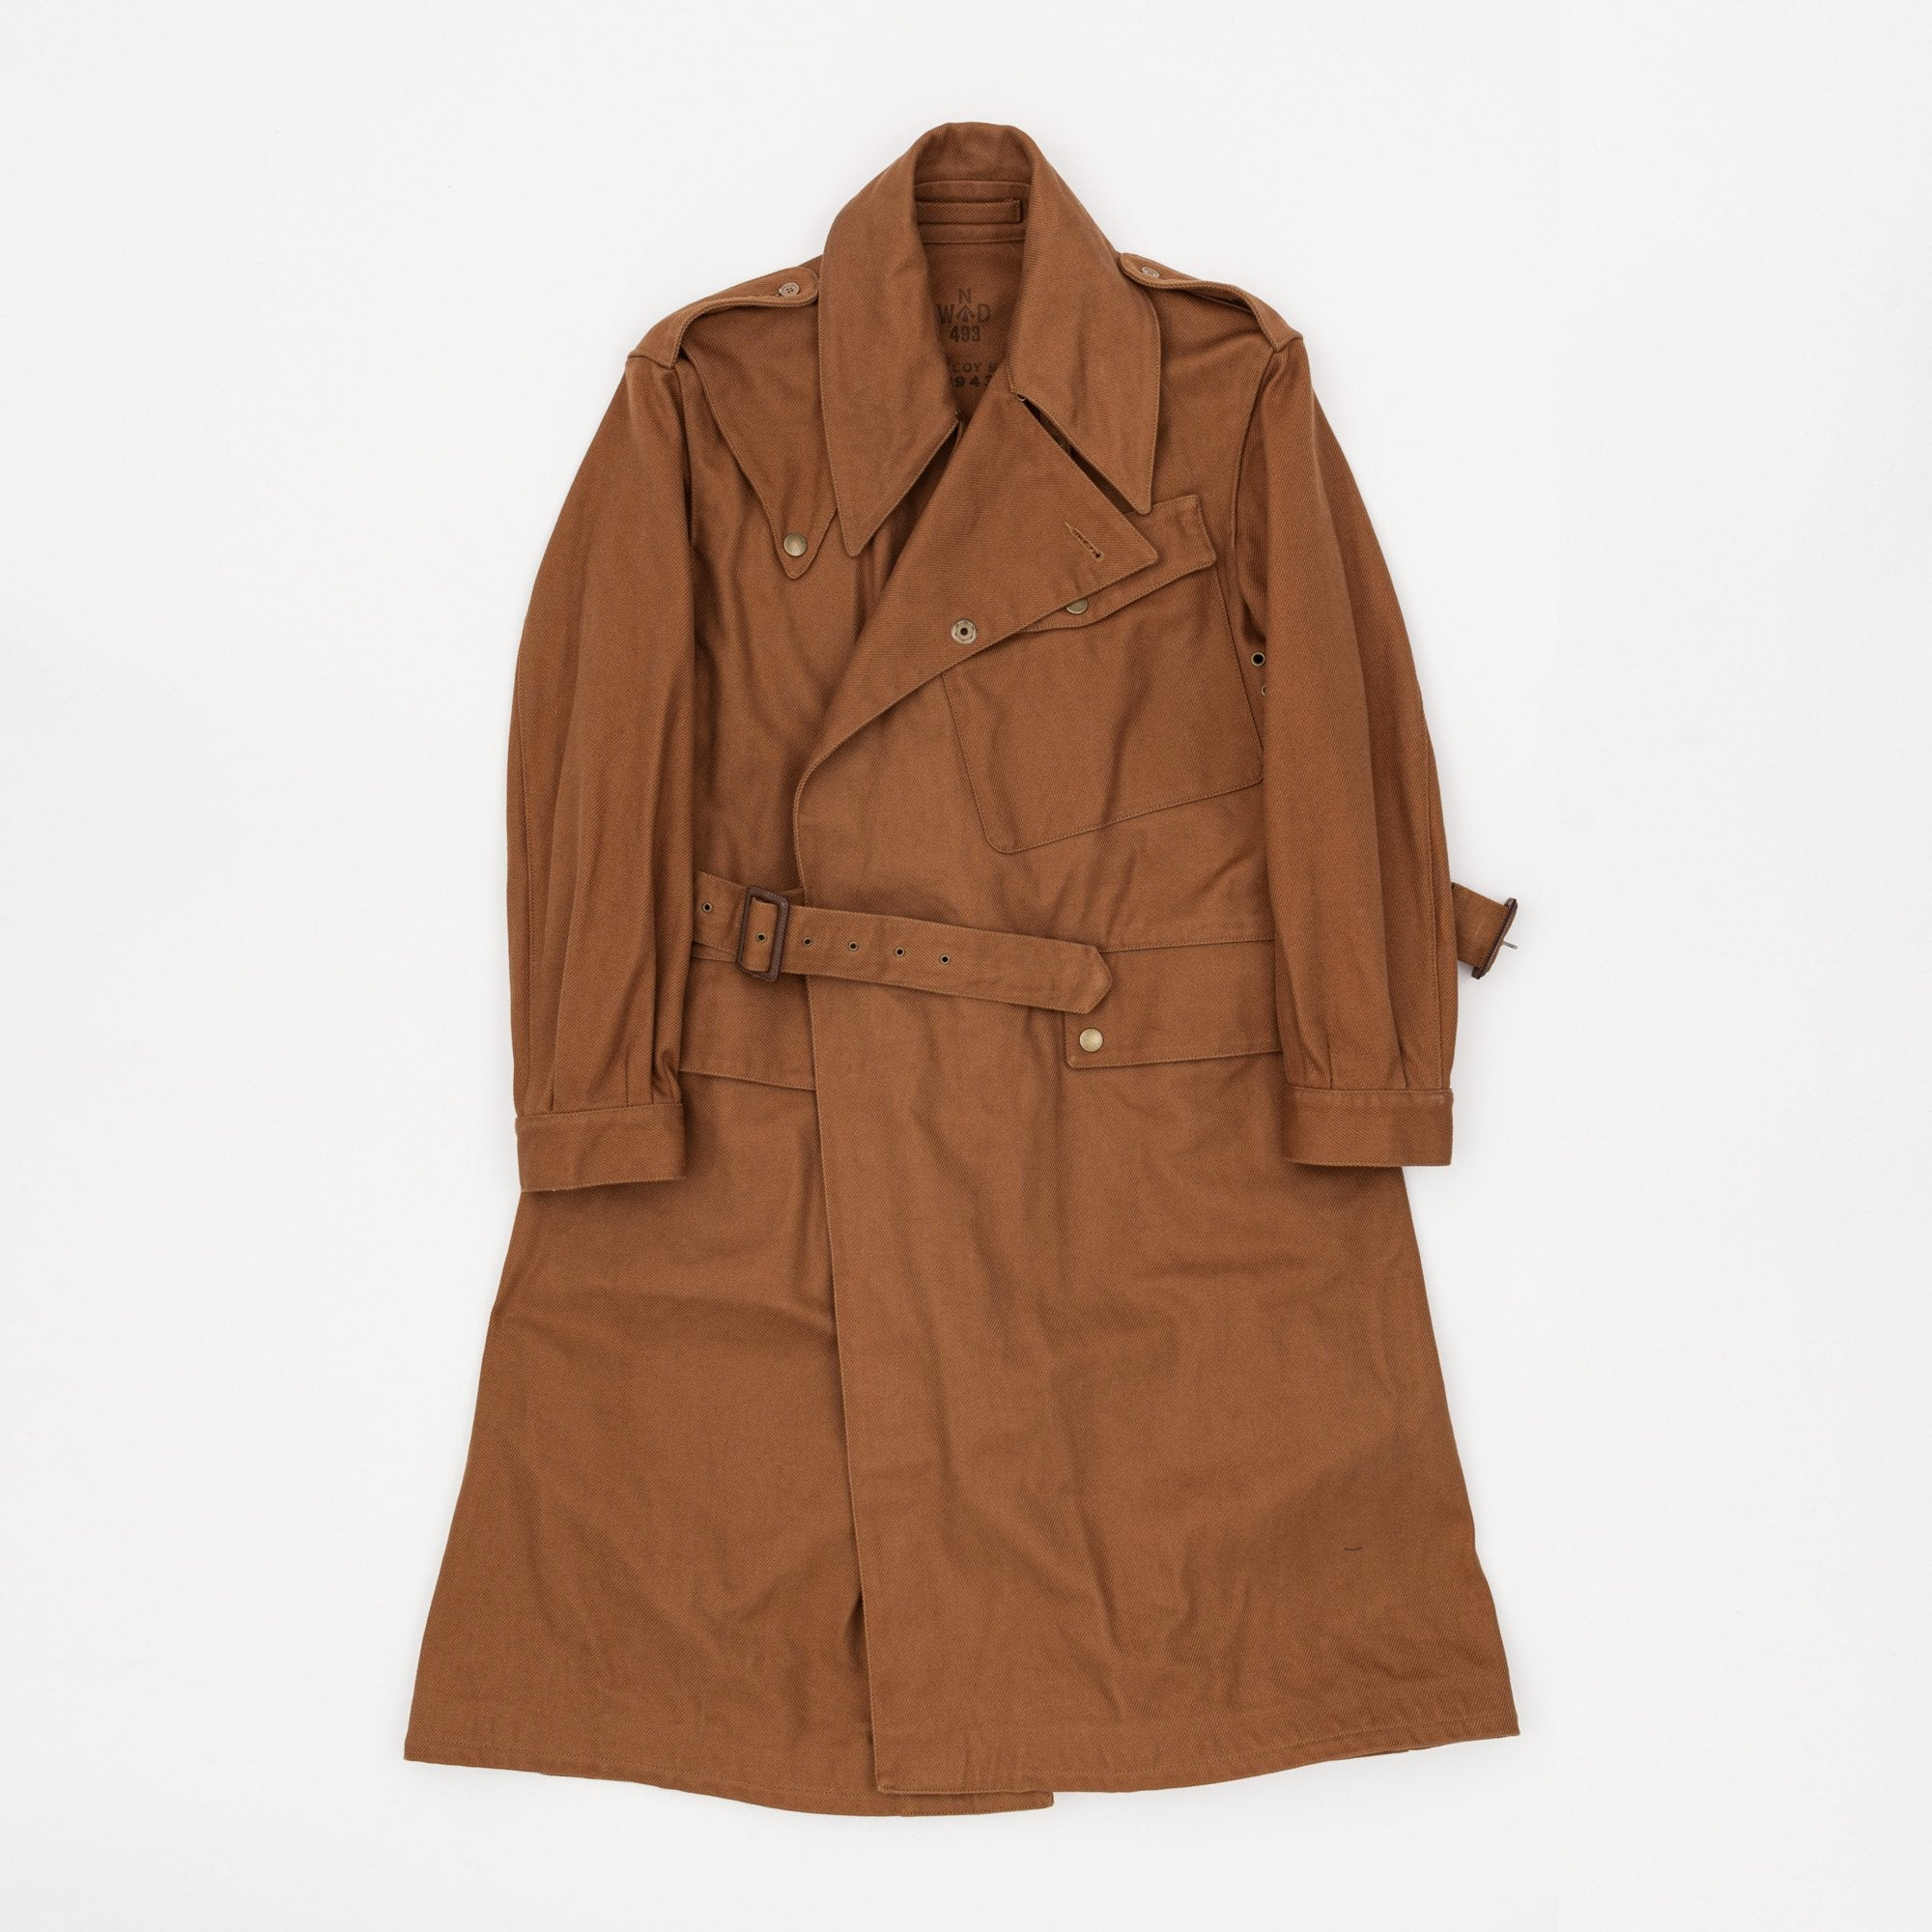 The Real McCoy's Dispatch Rider Coat